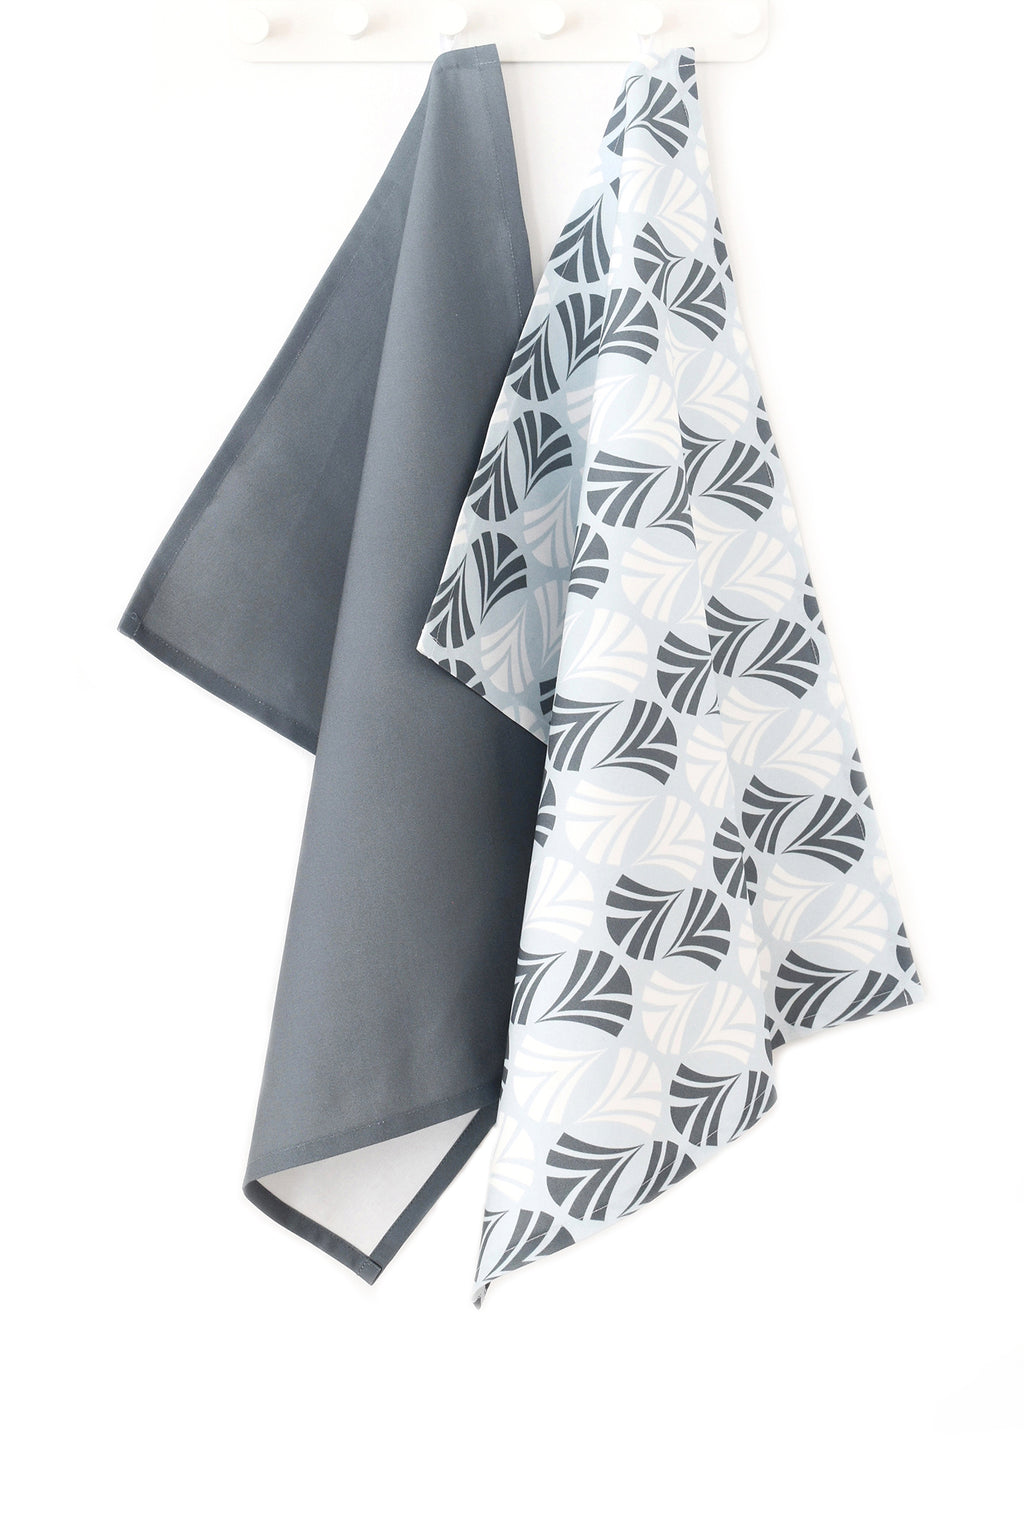 Waltz Linen Cotton Tea Towel (18.5x25) – Set of 2 (Patterned Pale Blue & Solid Charcoal)